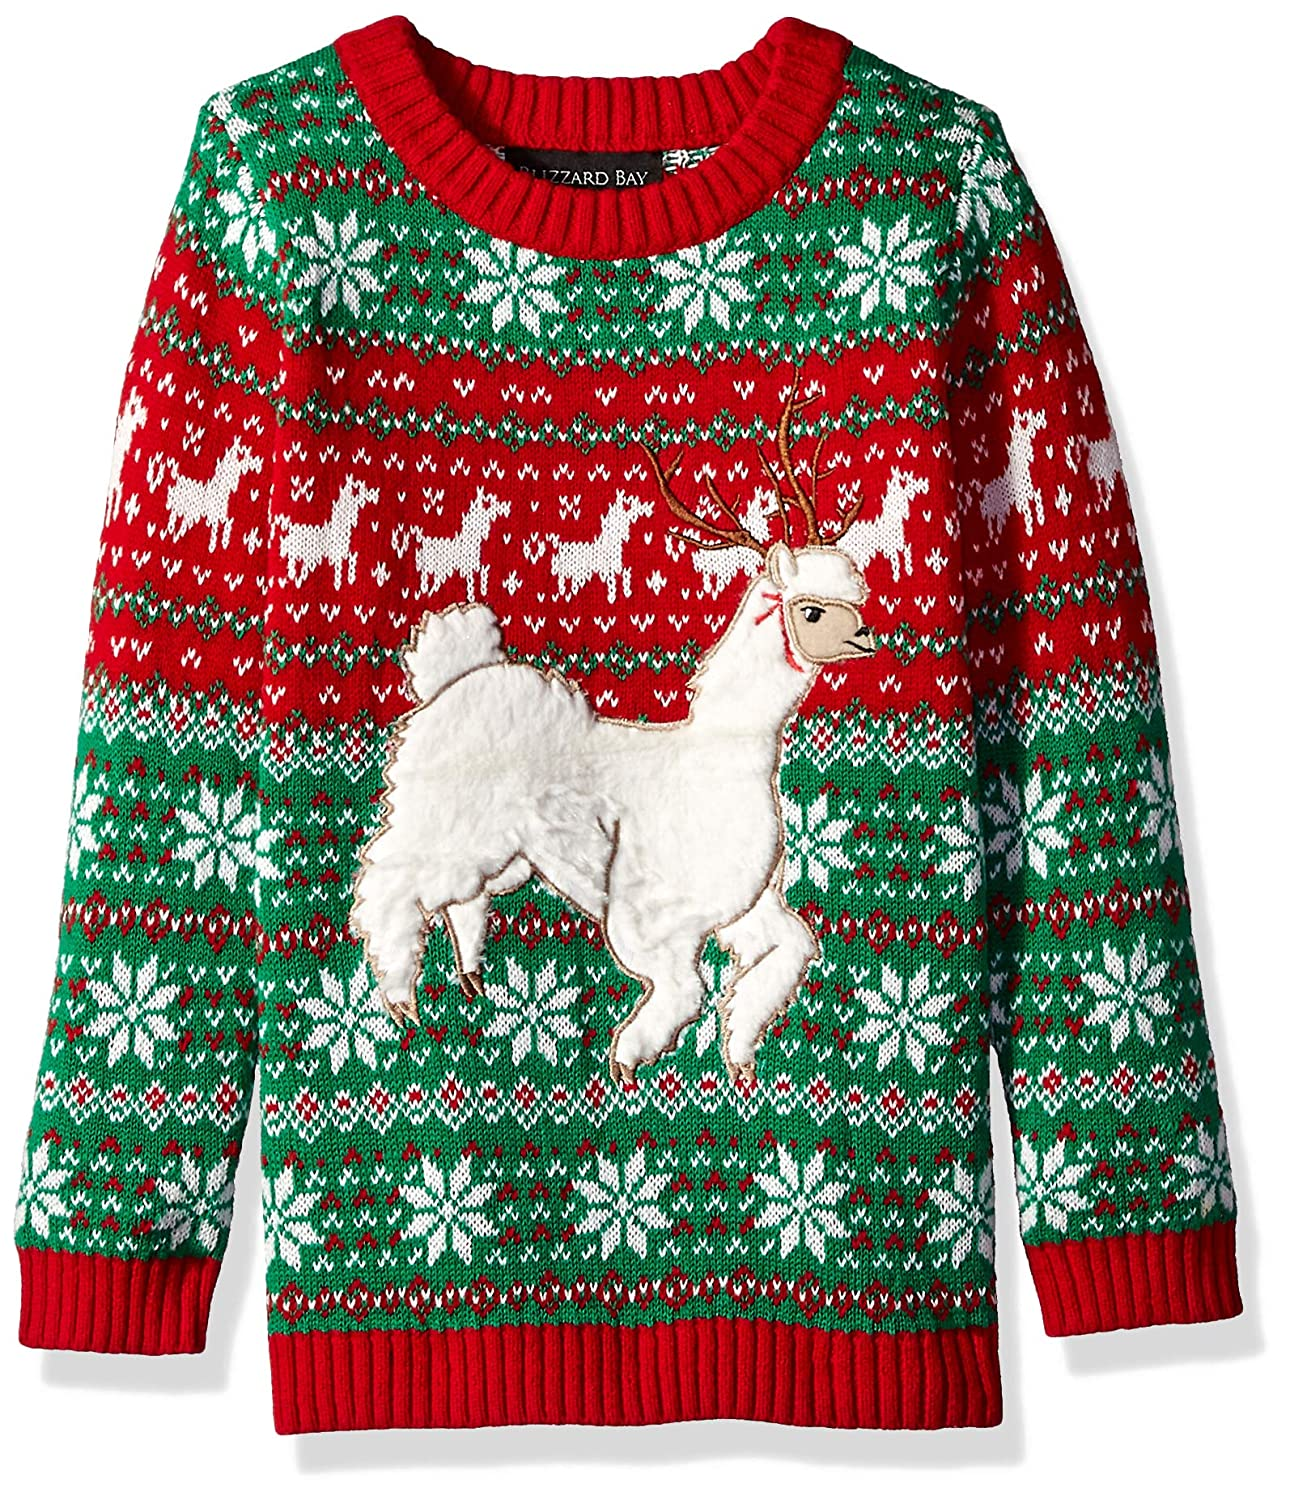 Blizzard Bay Boys Long Sleeve Crew Neck Alpaca Ugly Christmas Sweater